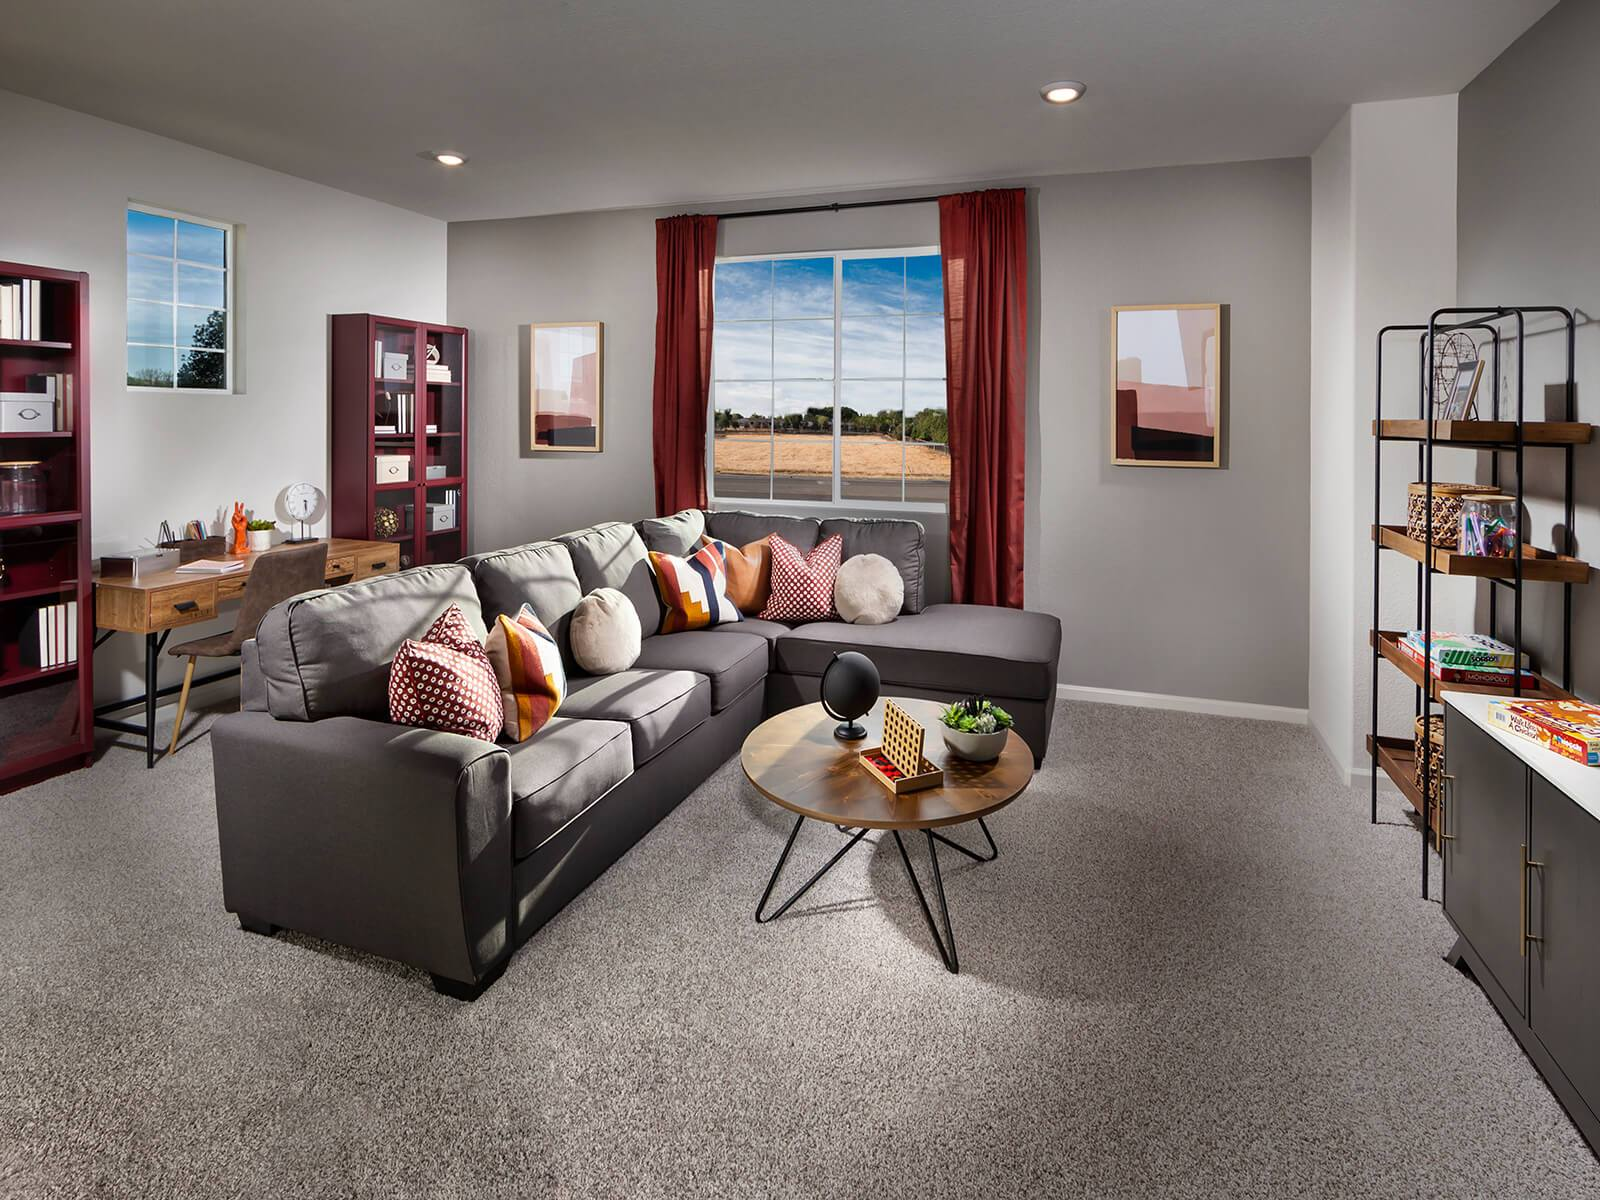 'The Vines' by Meritage Homes: Bay Area, C... in Oakland-Alameda